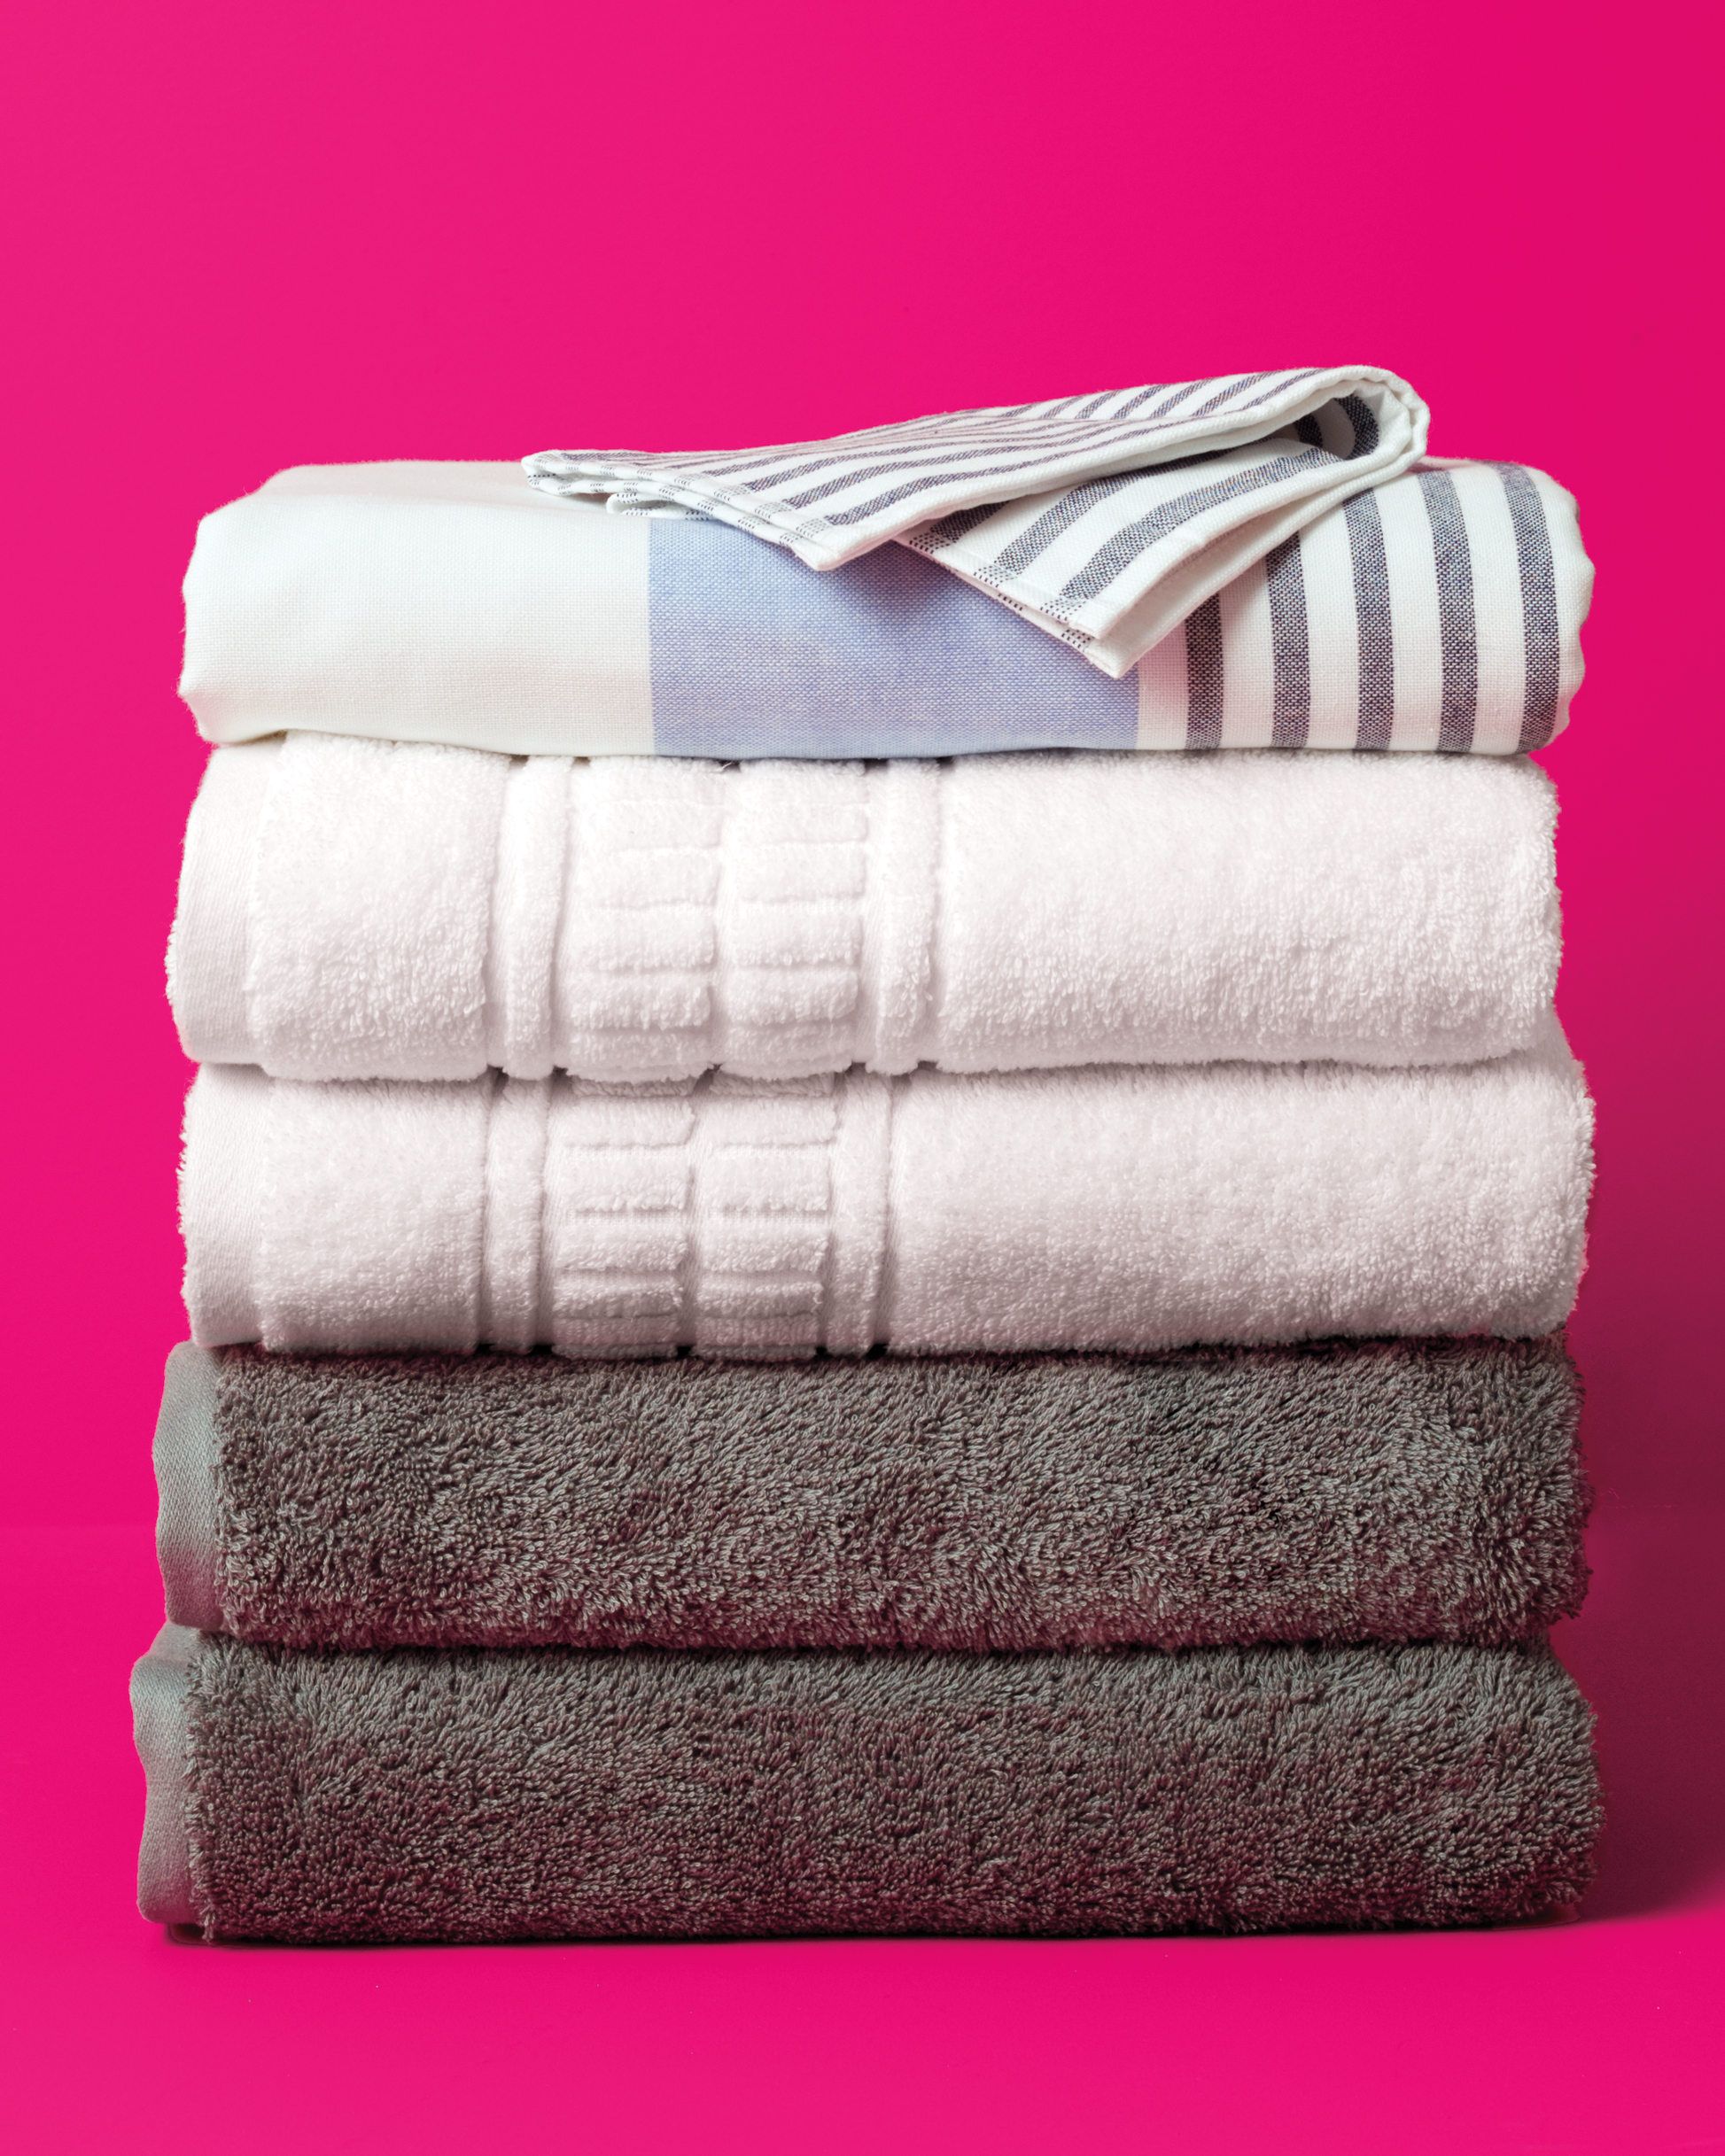 B is for Bath Towels